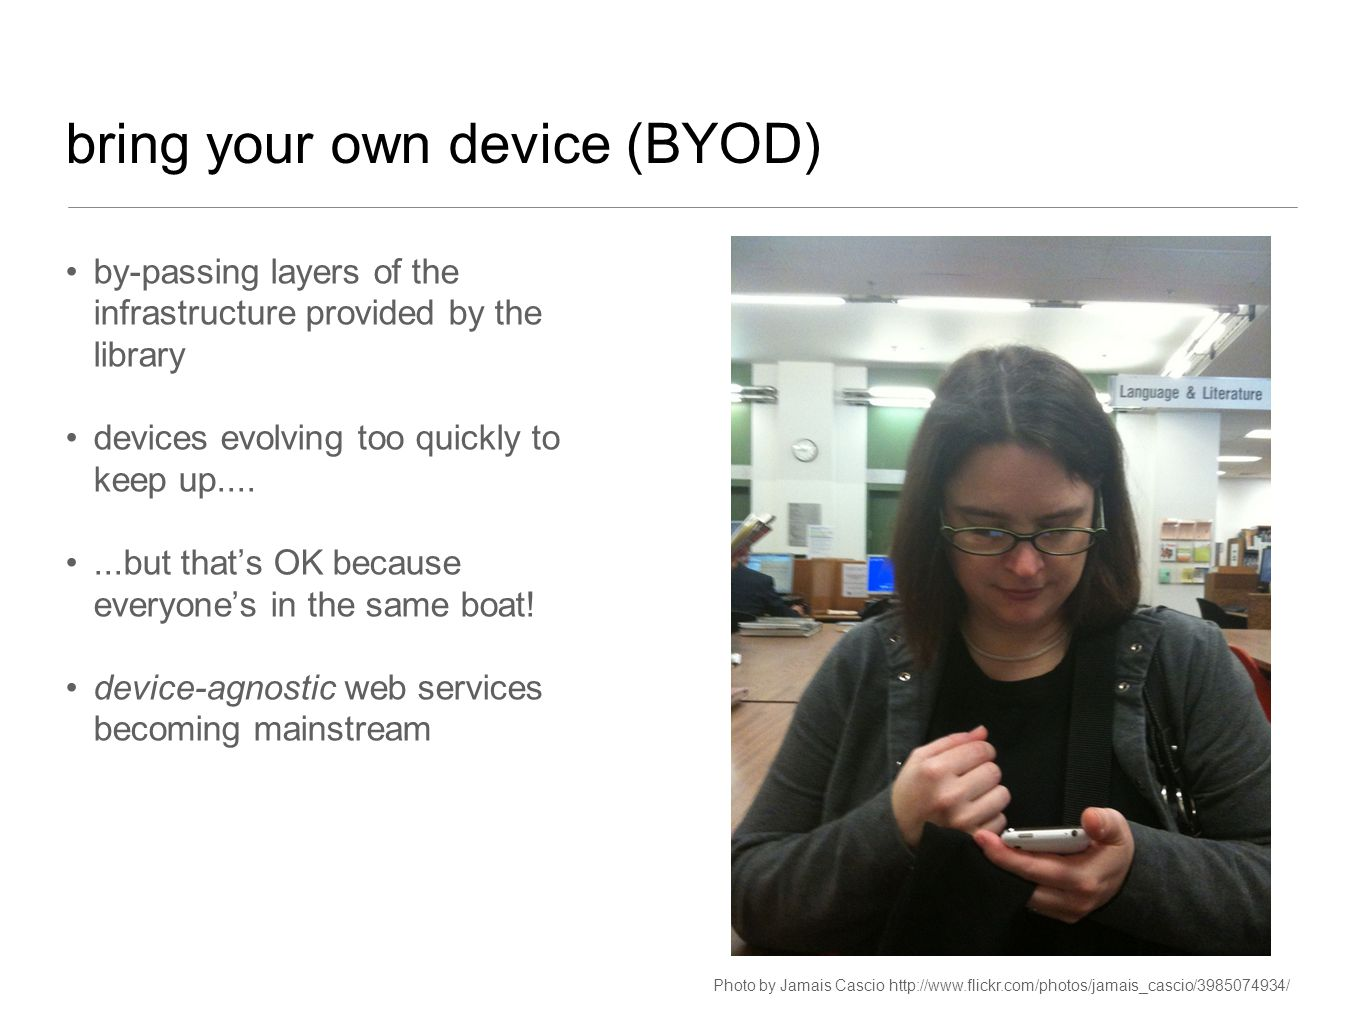 bring your own device (BYOD) by-passing layers of the infrastructure provided by the library devices evolving too quickly to keep up.......but thats O